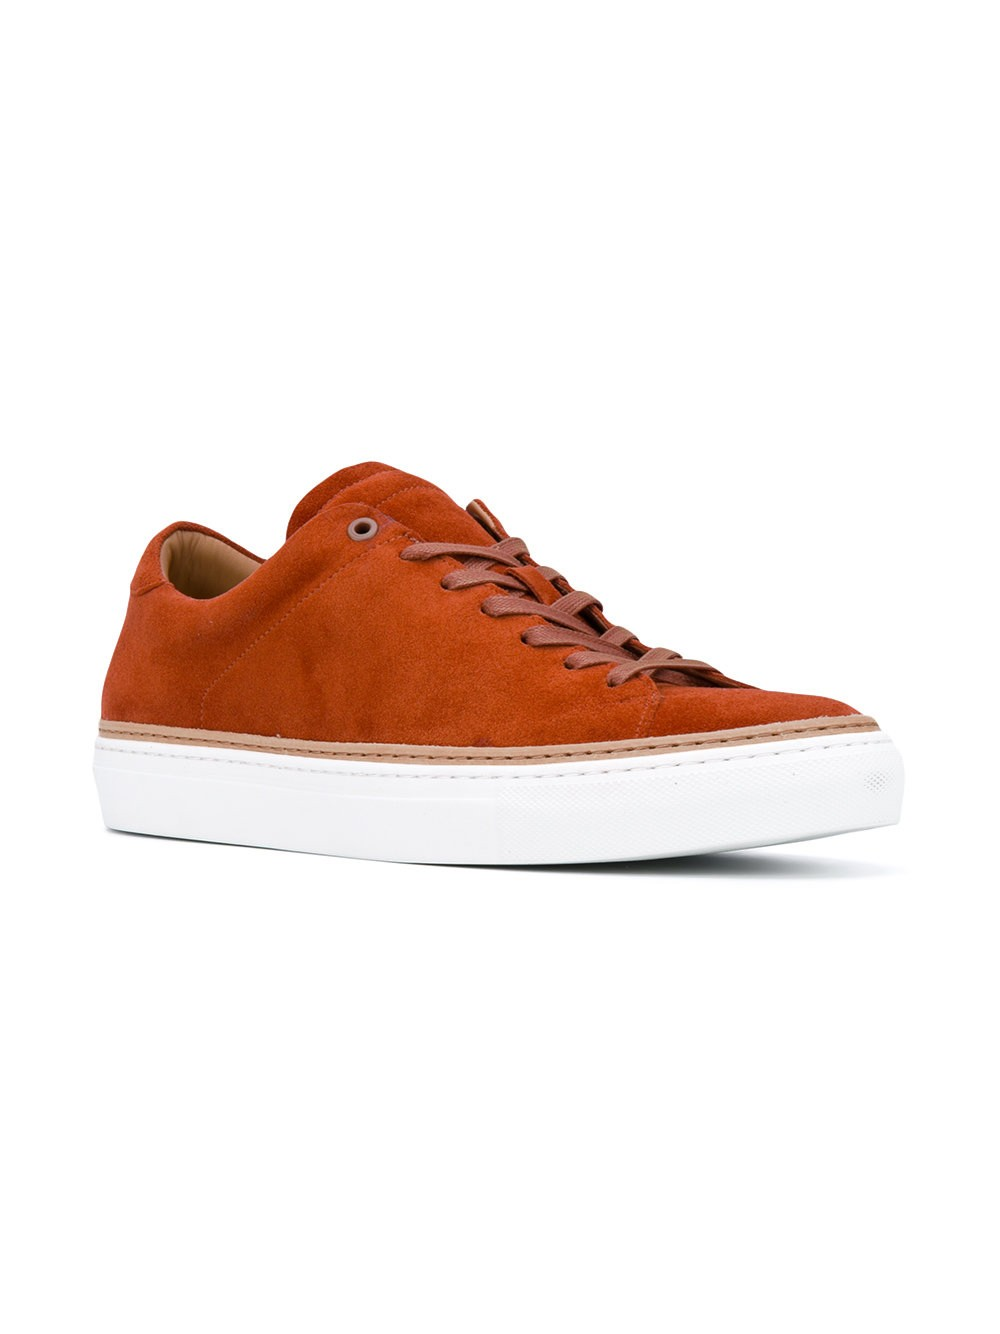 Natural Selection No. 288 Prince Habanero Suede Sneaker